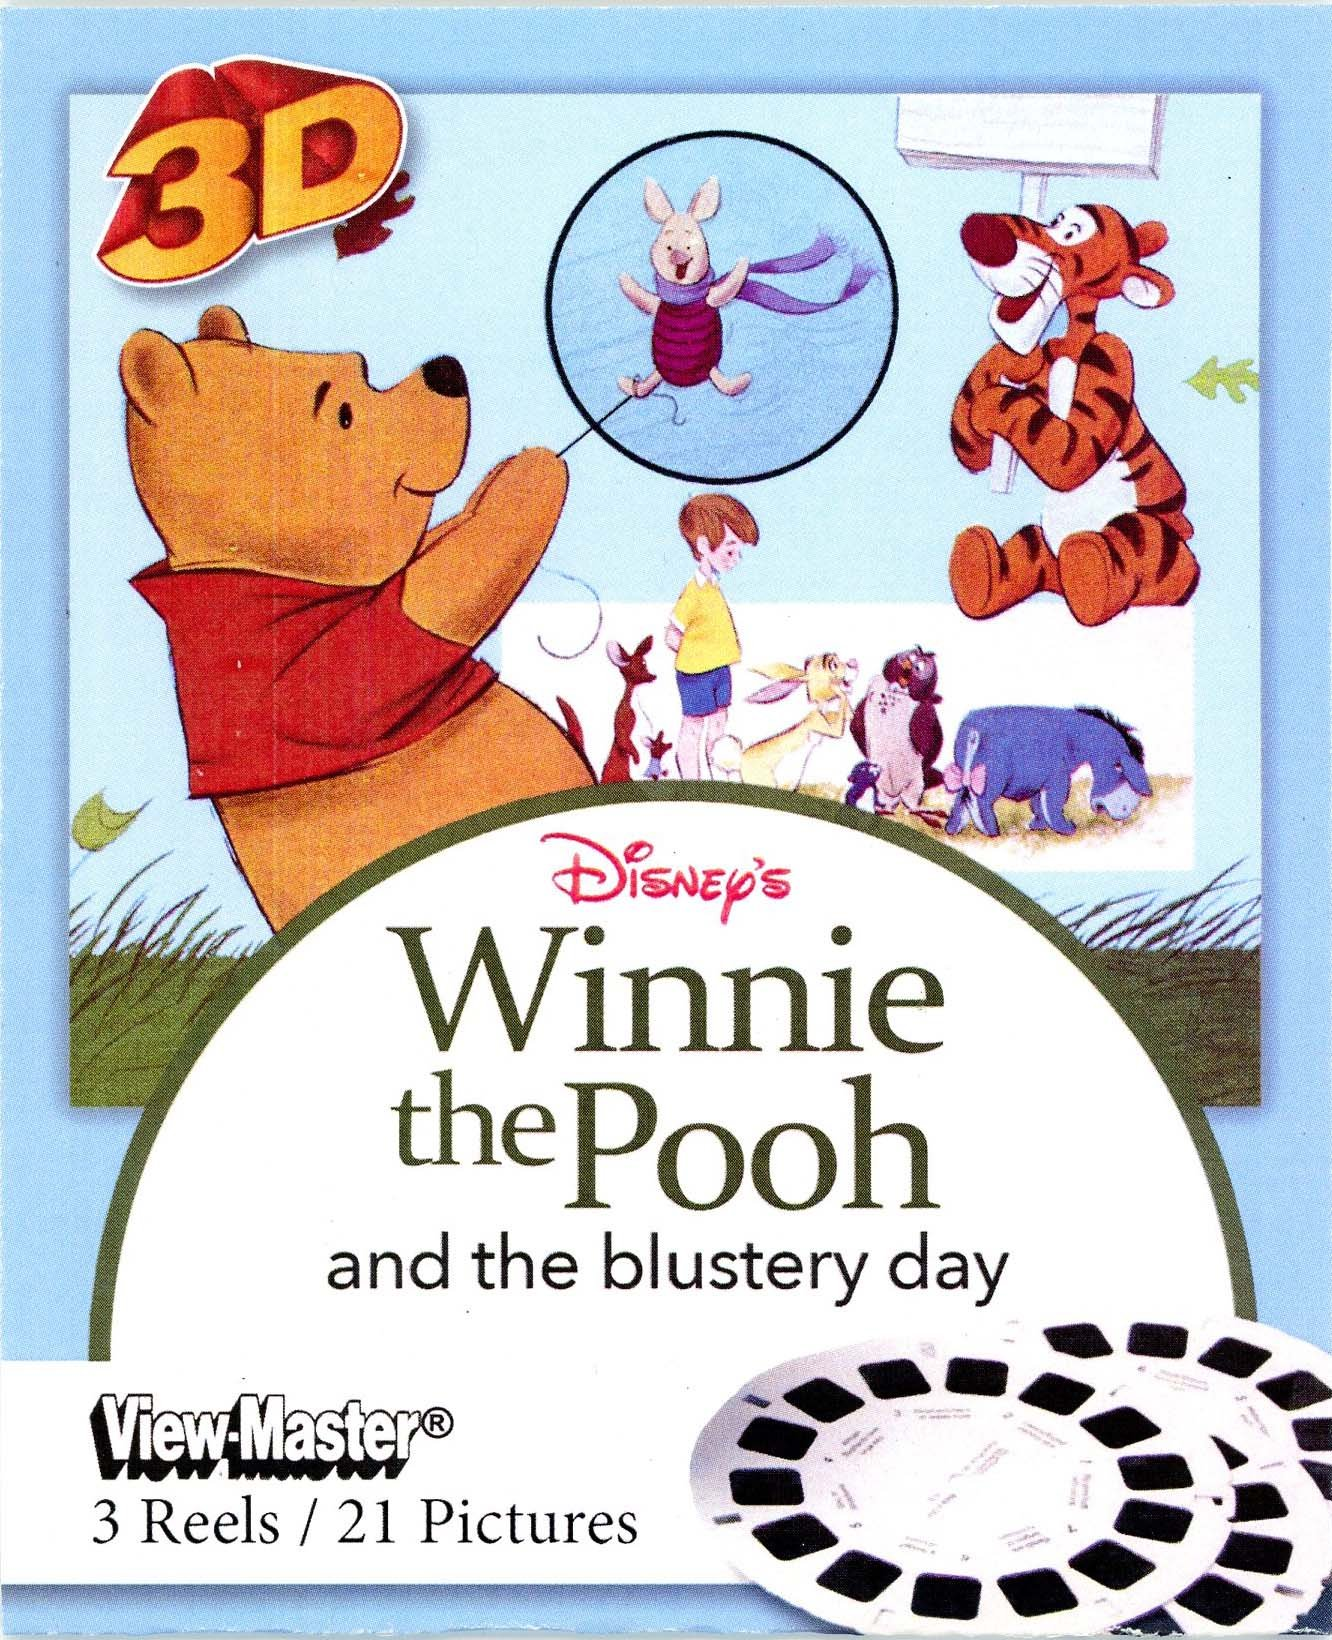 Disney's Winnie the Pooh and the Blustery Day 3d View-Master 3 Reel Set